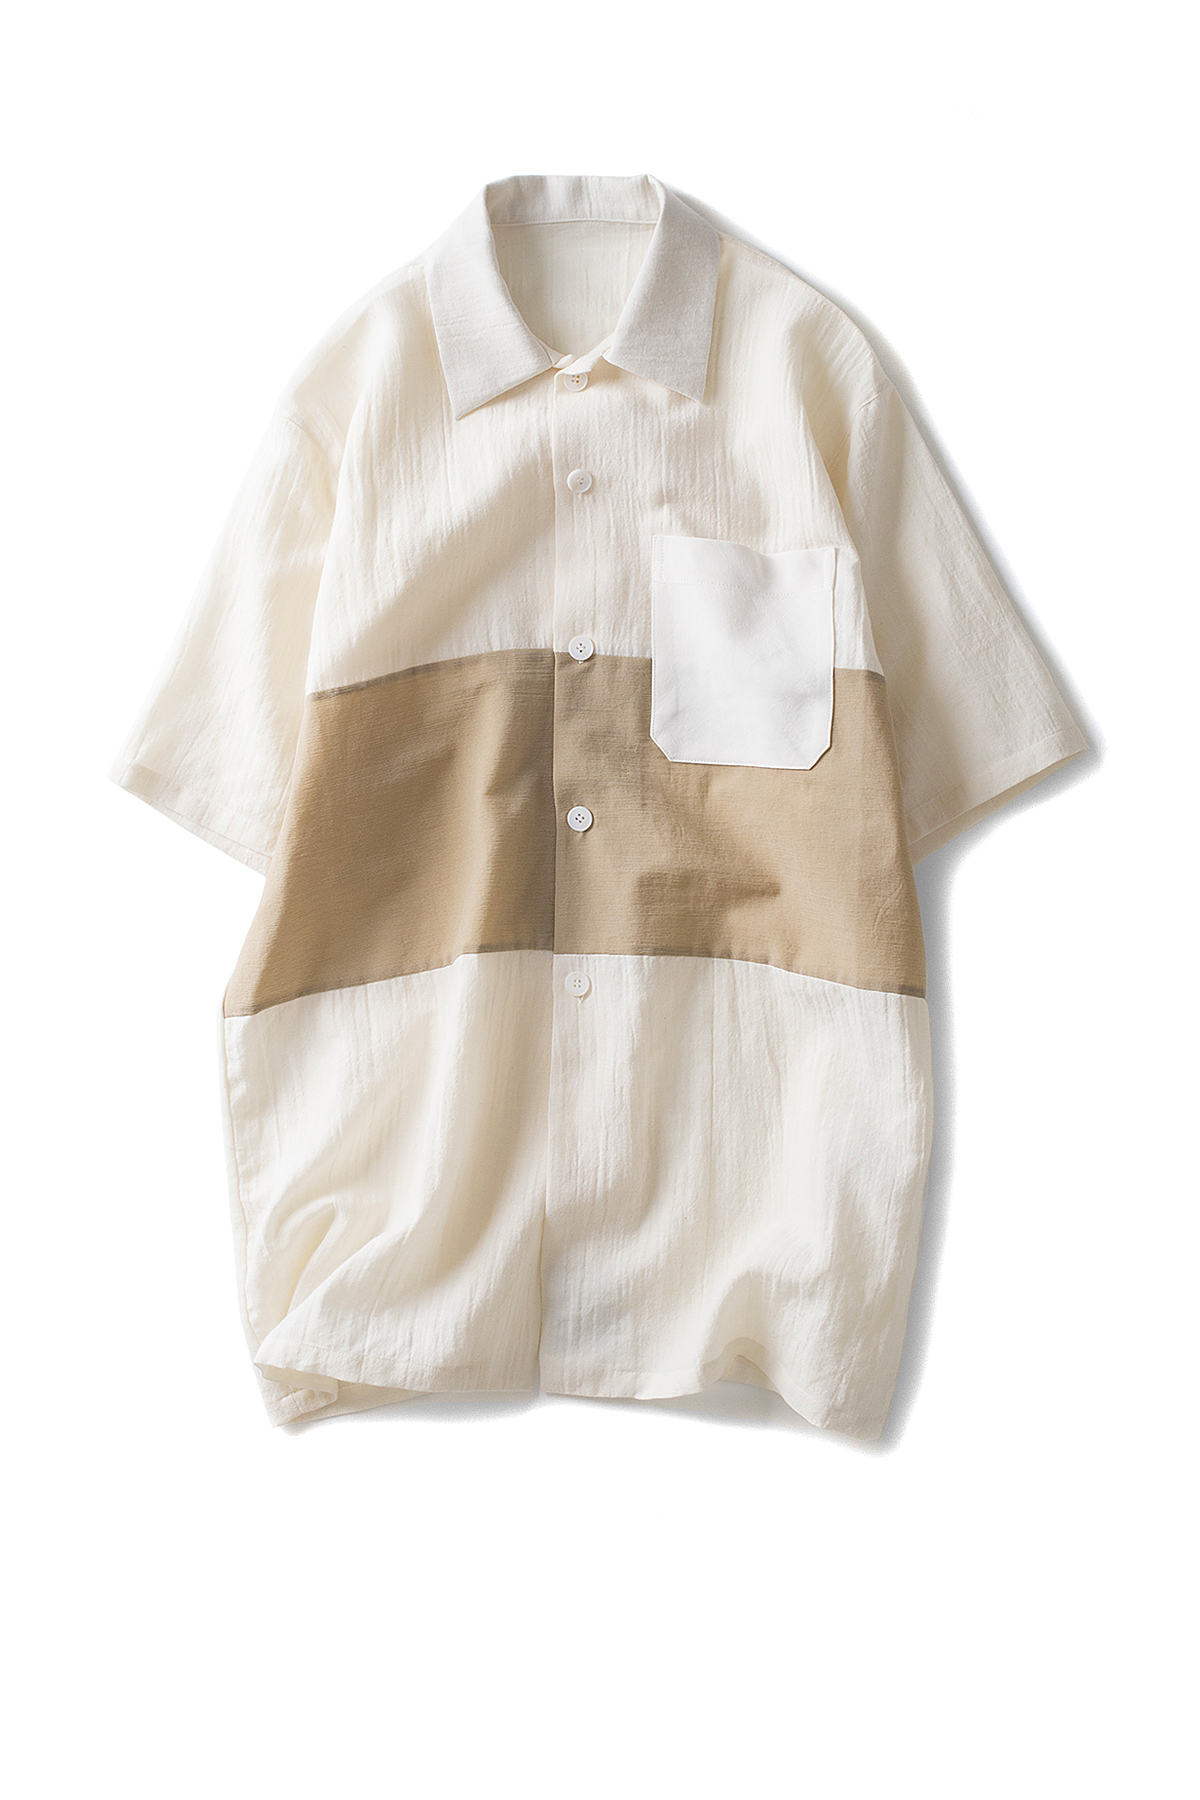 Peir Wu : Tourist Shirt (Off White / Sand)